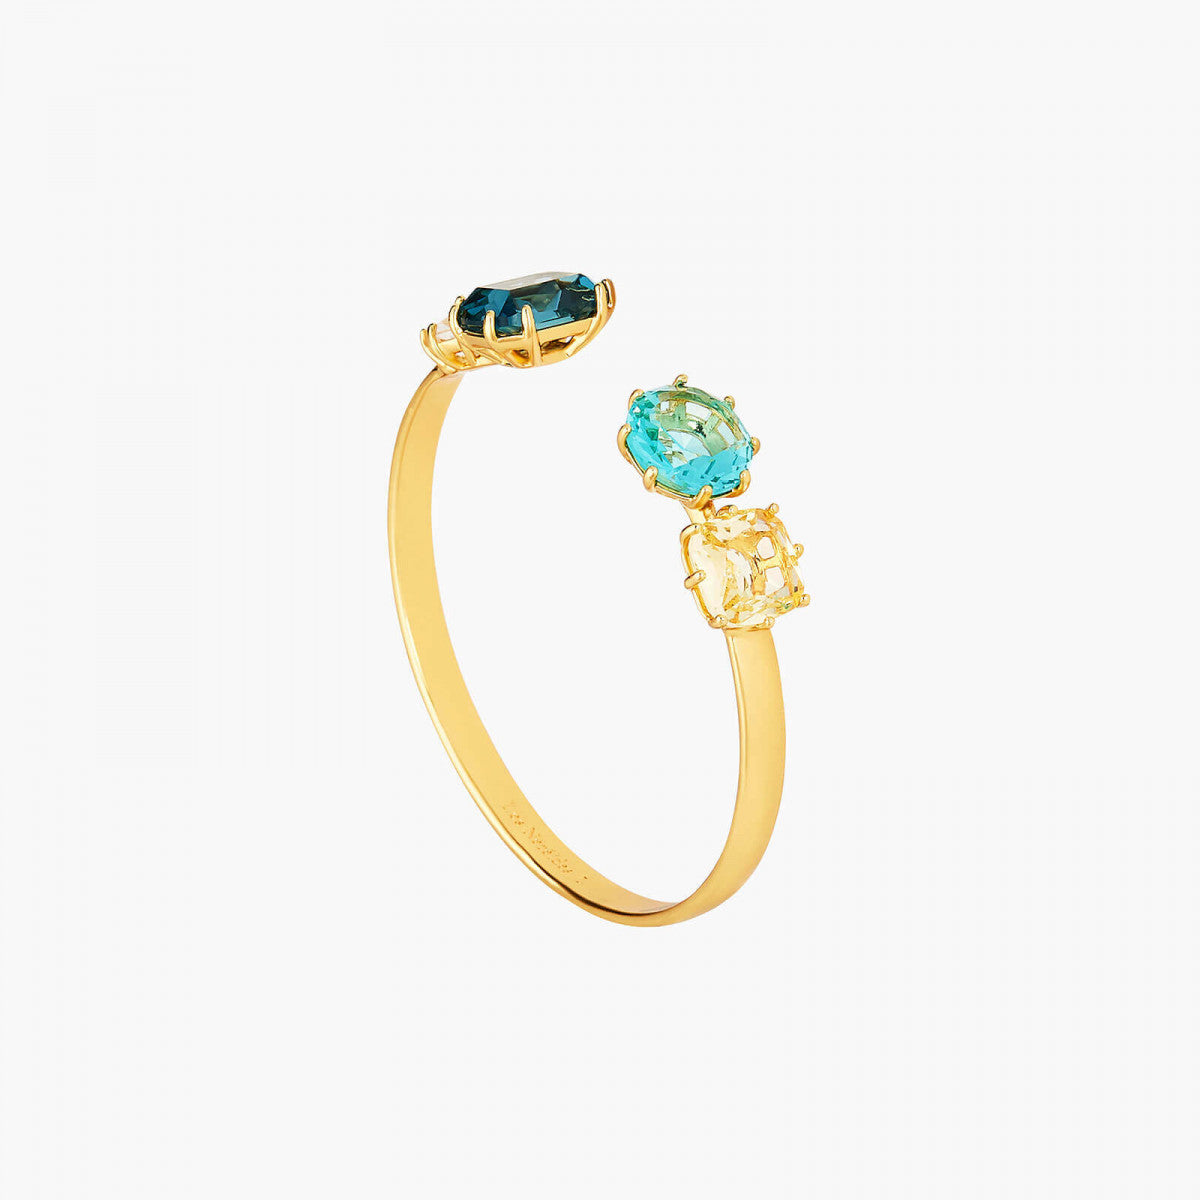 La Diamantine acqua azzura stones bangle bracelet